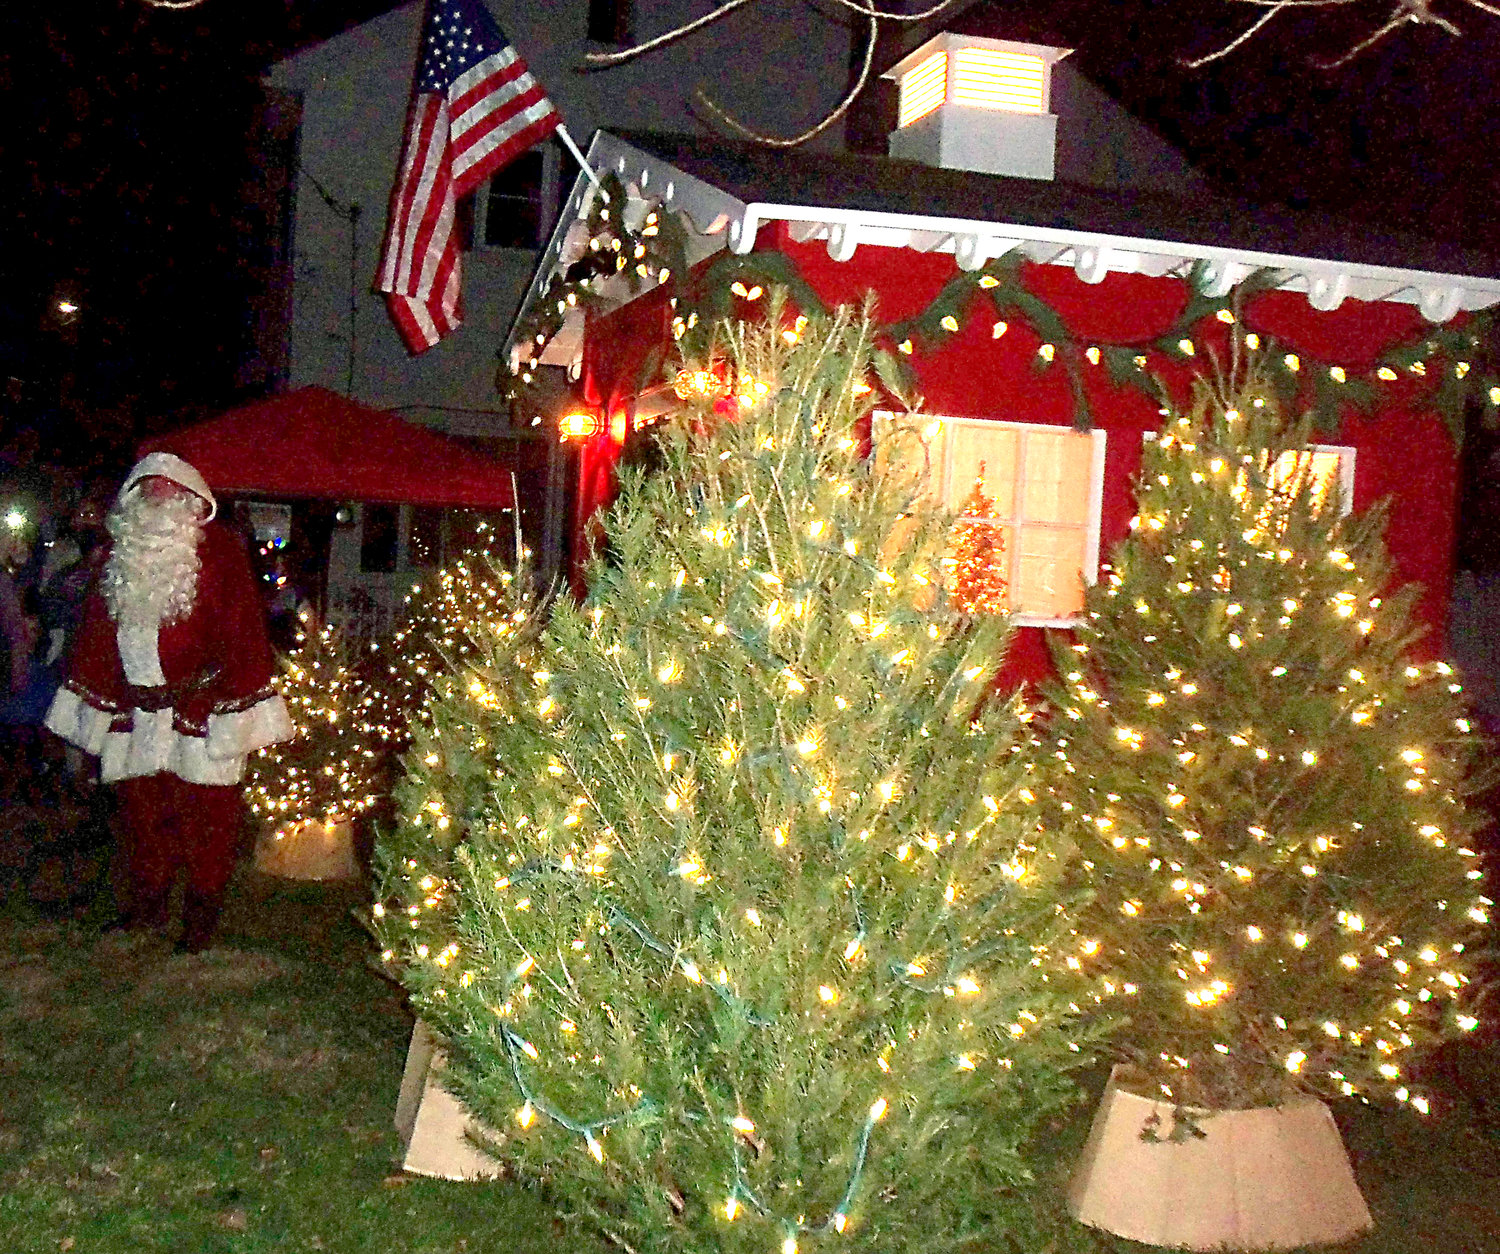 Middletown's new Santa house was officially unveiled at the borough's tree-lighting ceremony on Saturday night, Nov. 30.